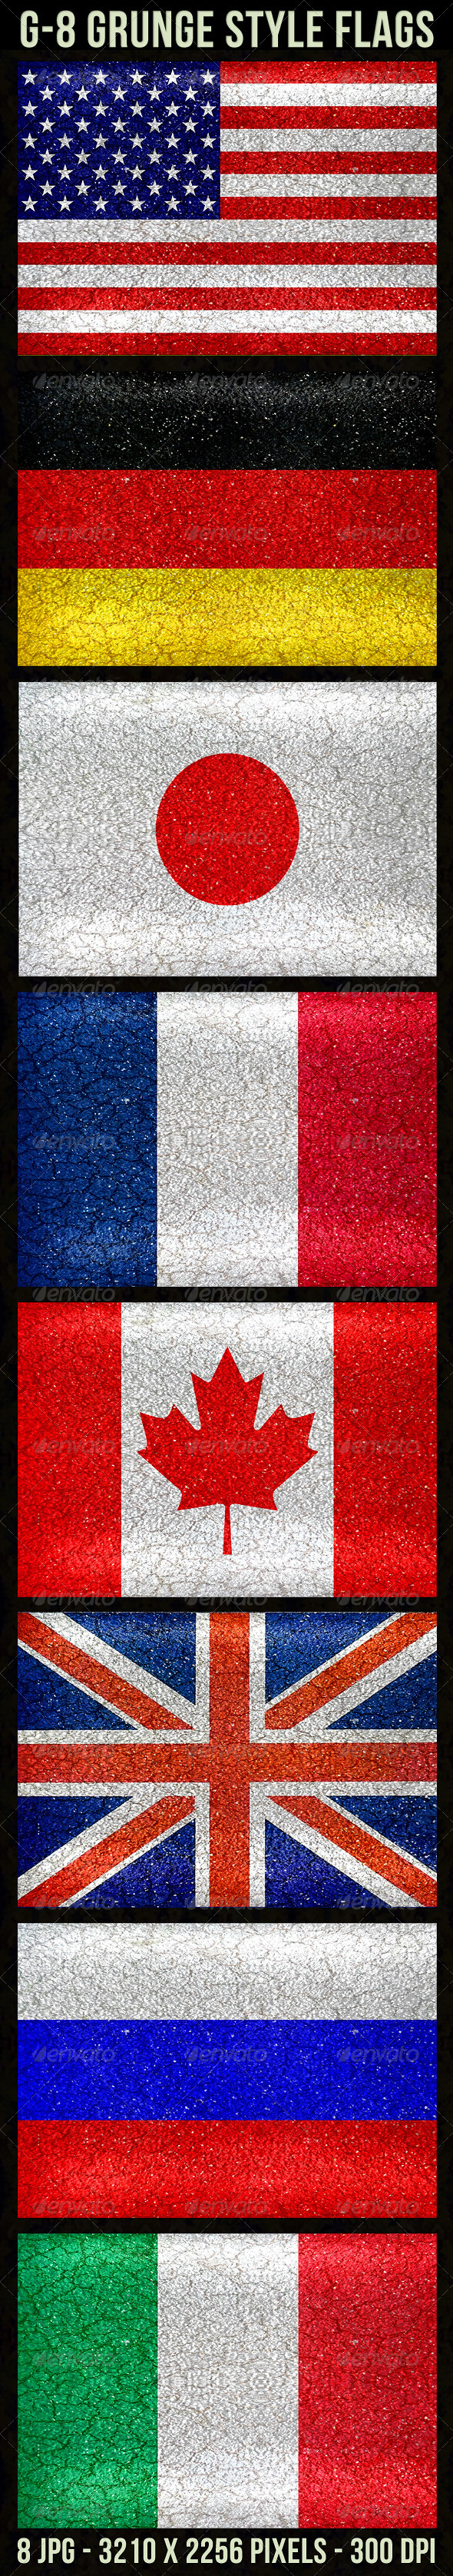 GraphicRiver G-8 Grunge Style Flags 5573257